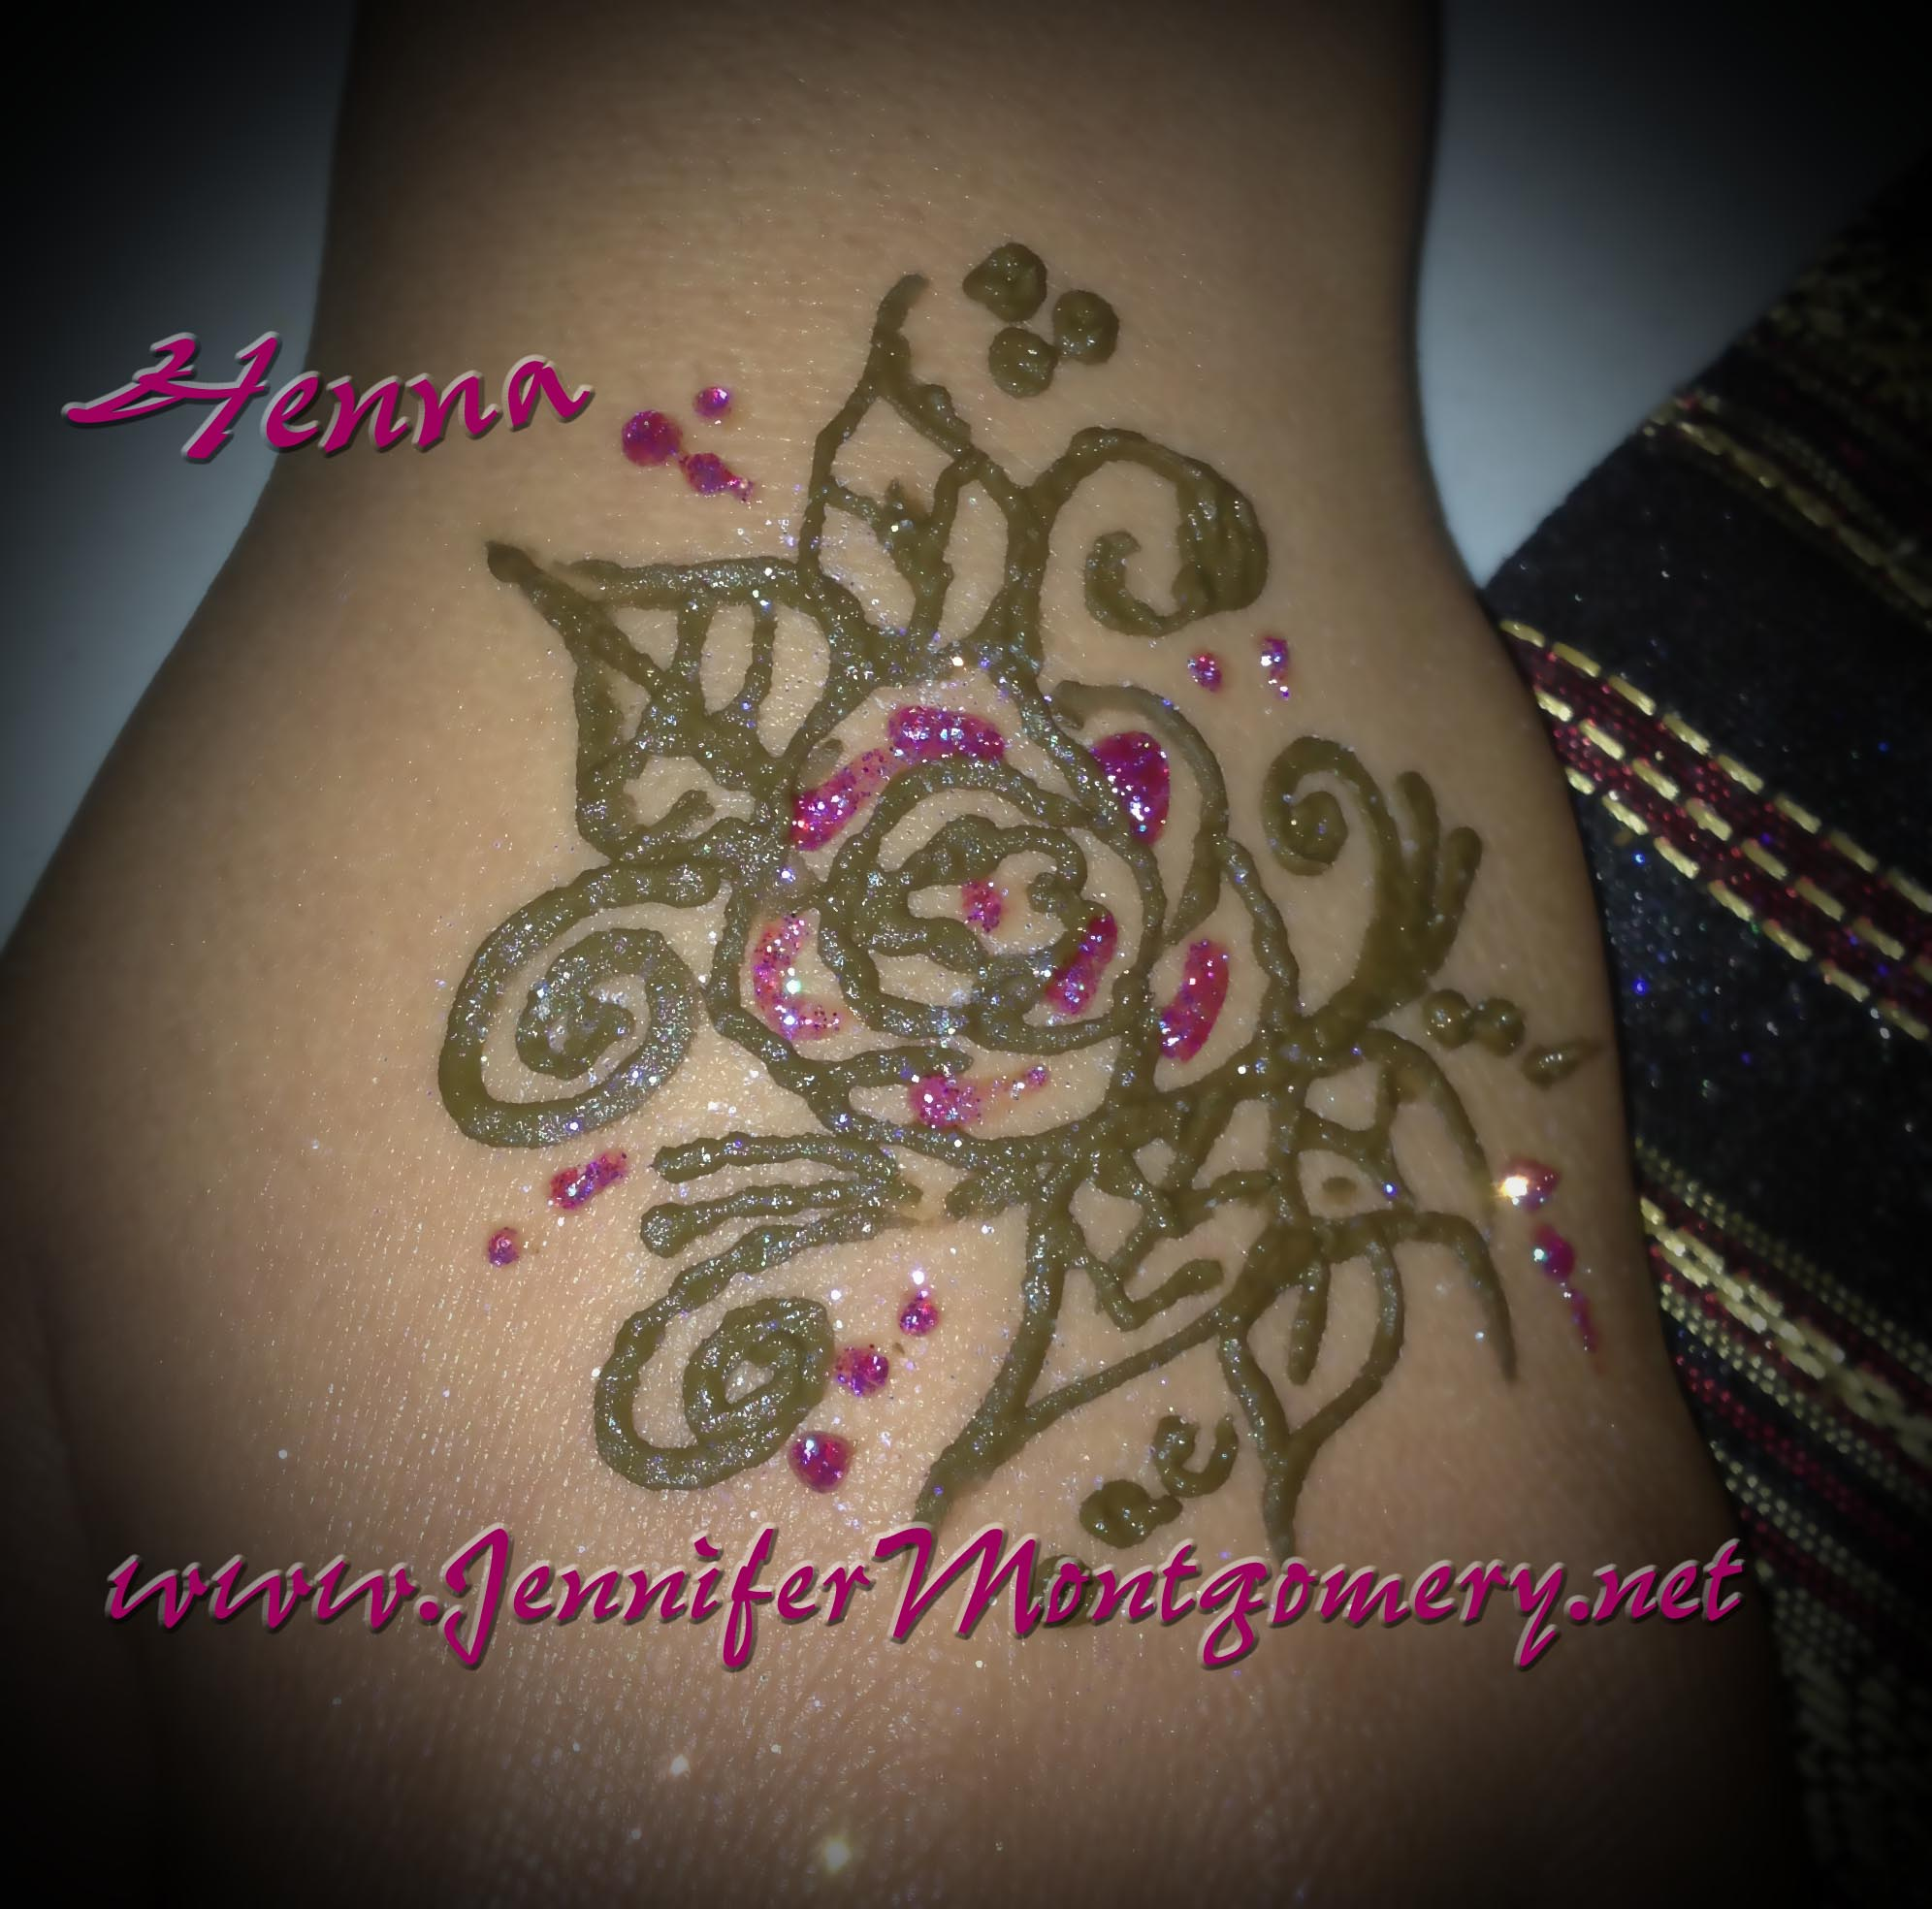 Henna rose tattoo crazyfaces face painting and body art for Rose henna tattoo